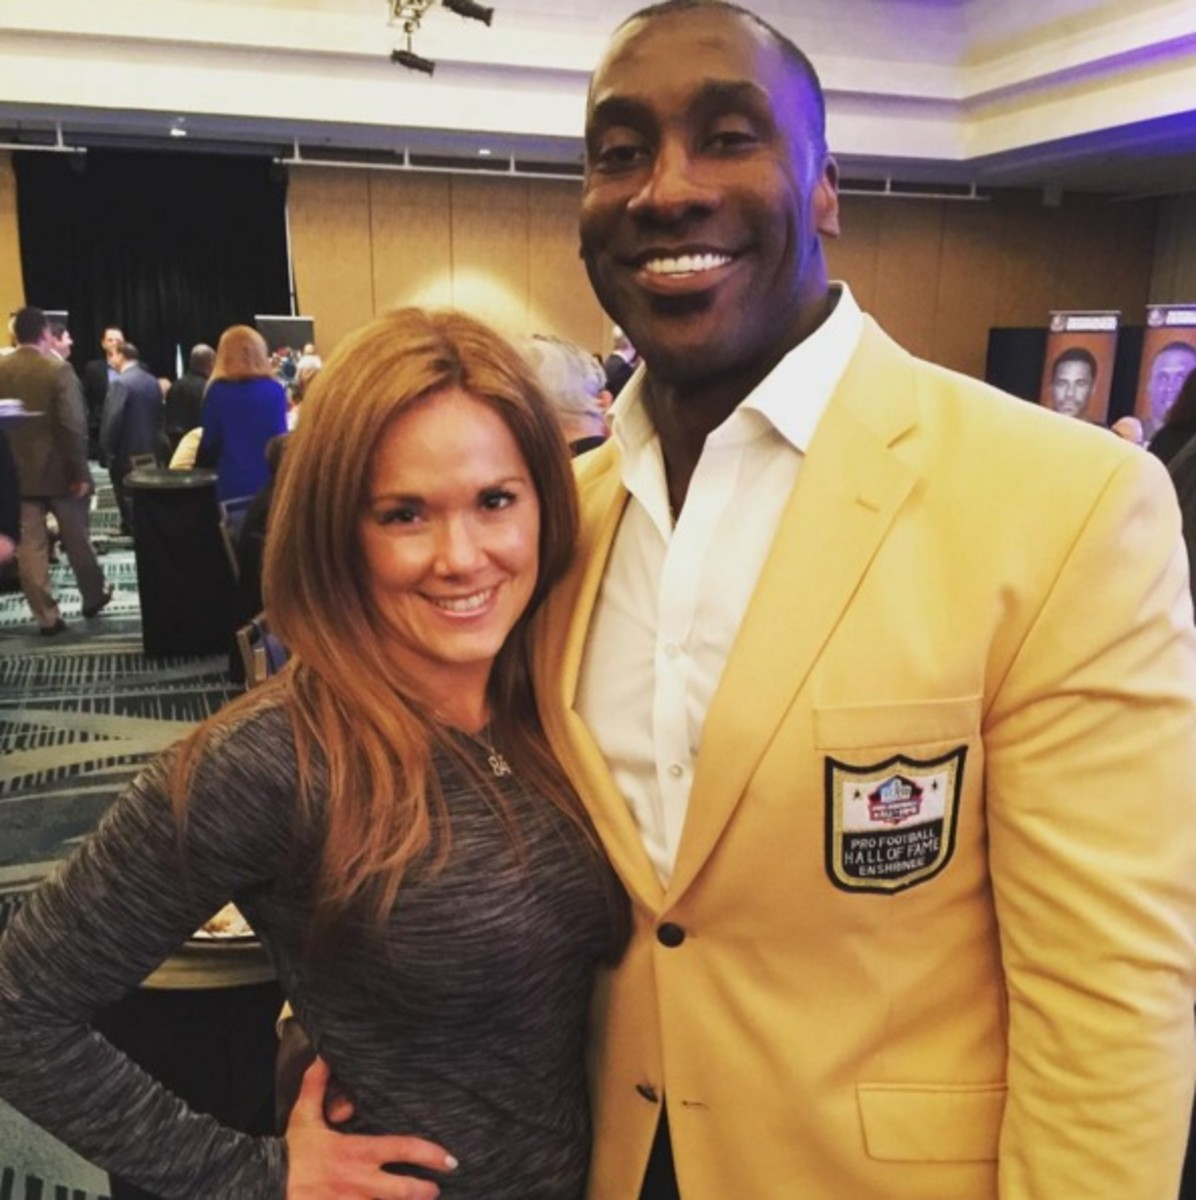 Katy Kellner is the fiancee of Shannon Sharpe but she gave birth to her son from a different father.